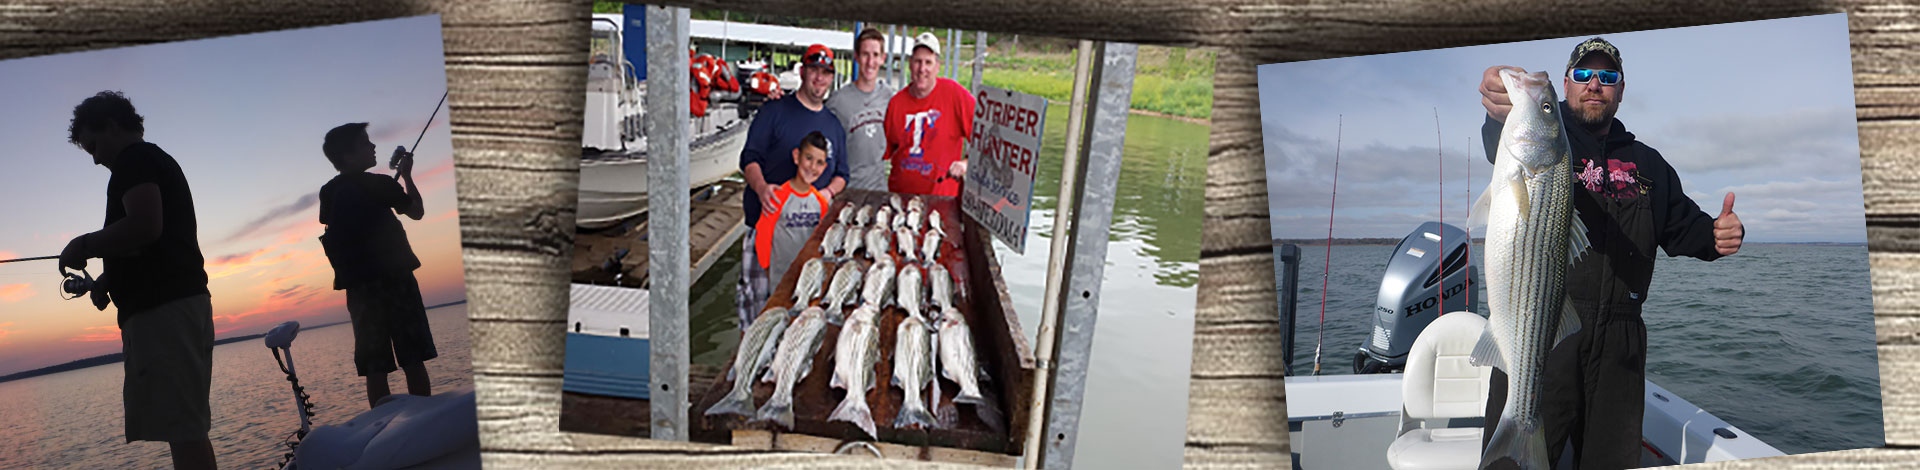 Striper Fishing Guide Downloads